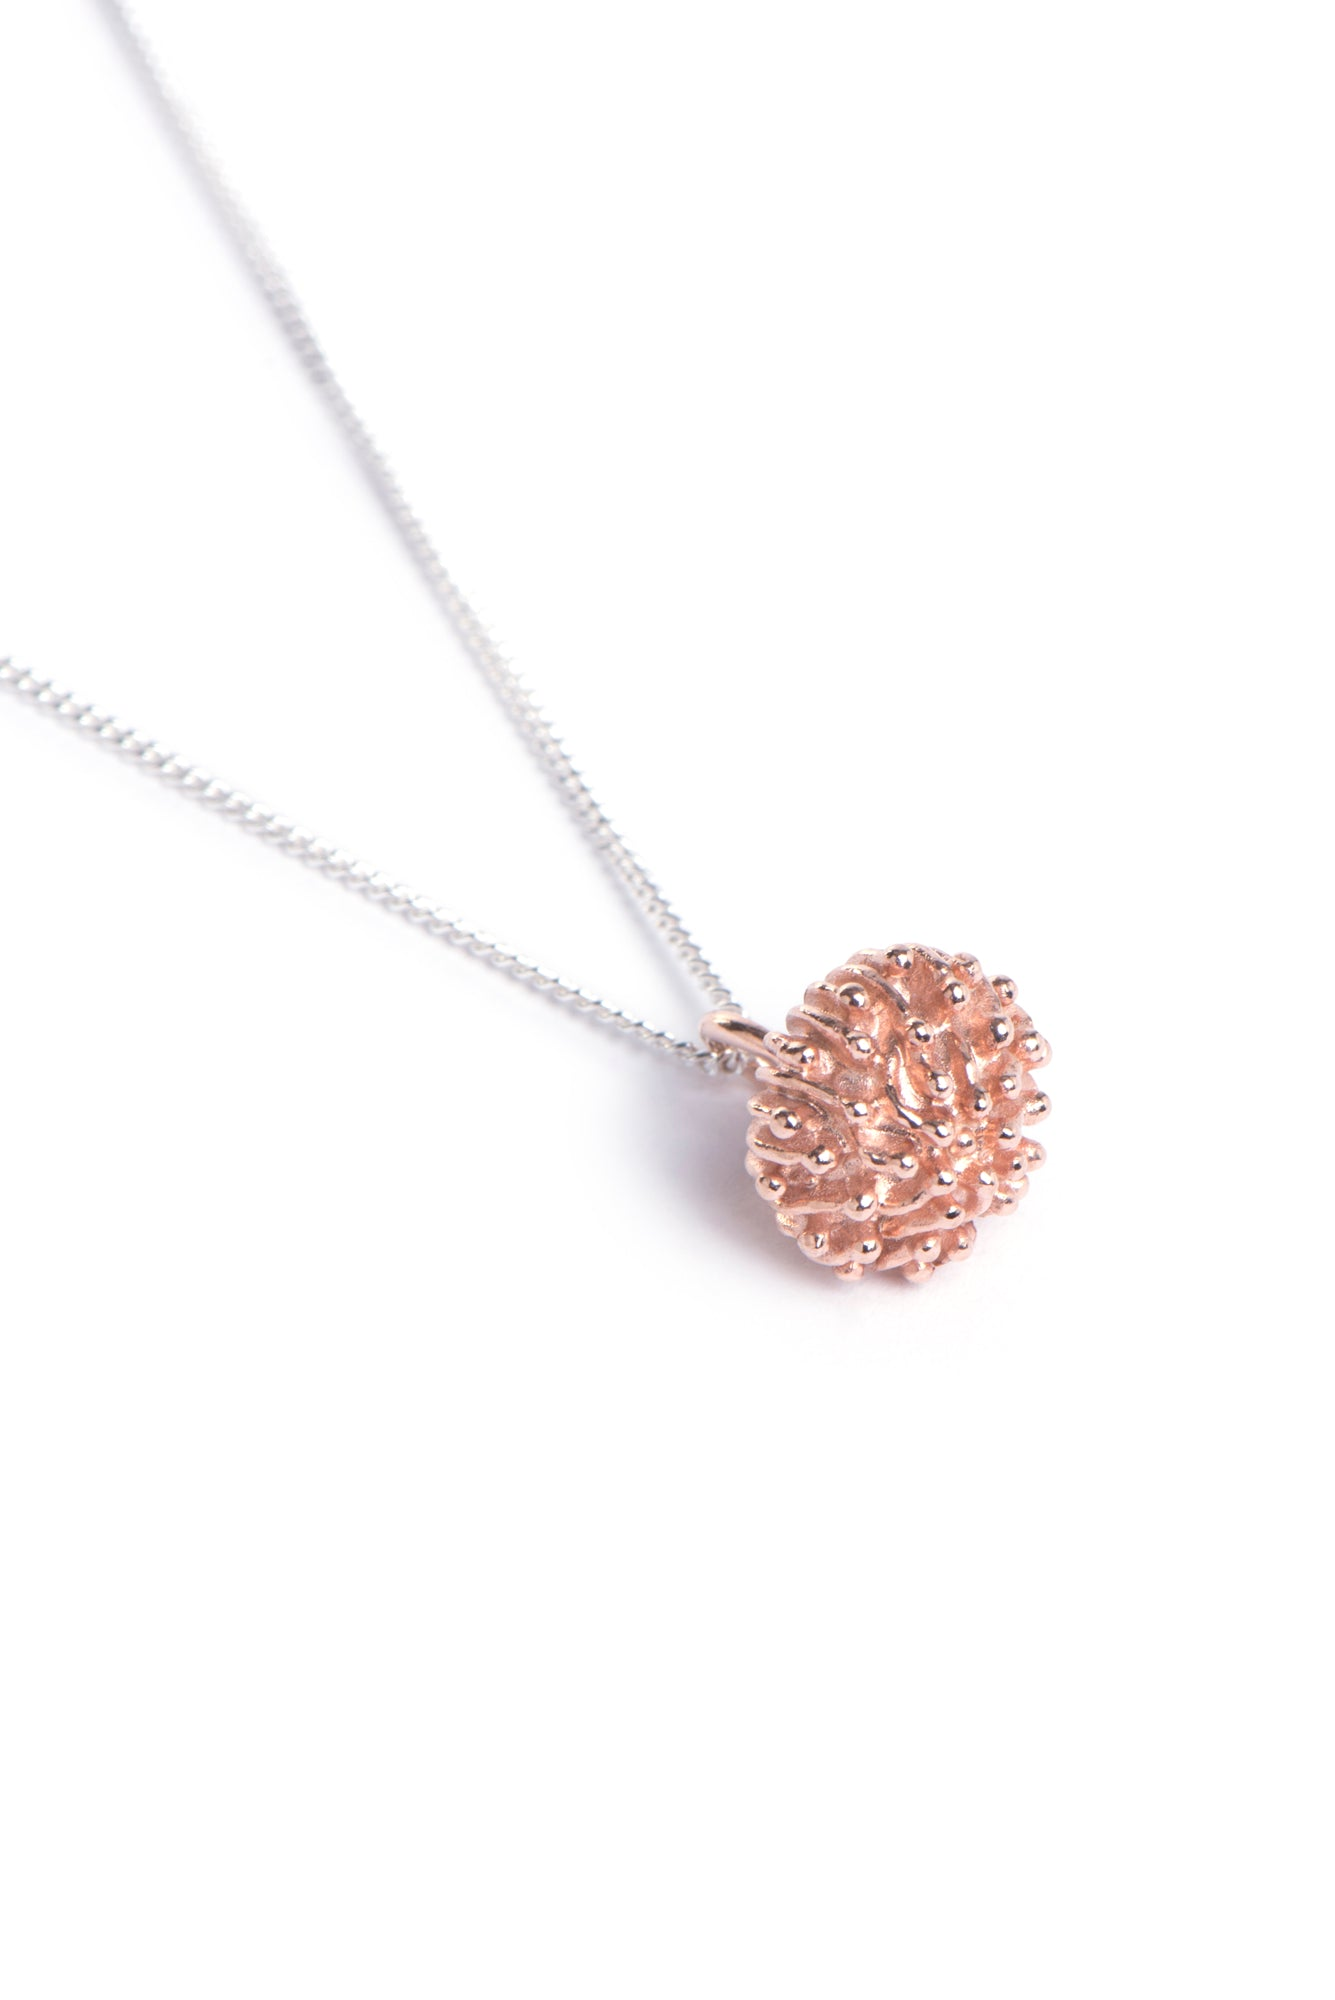 Rose Gold plated Sterling Silver Protea Pincushion necklace inspired by South Africa's Fynbos